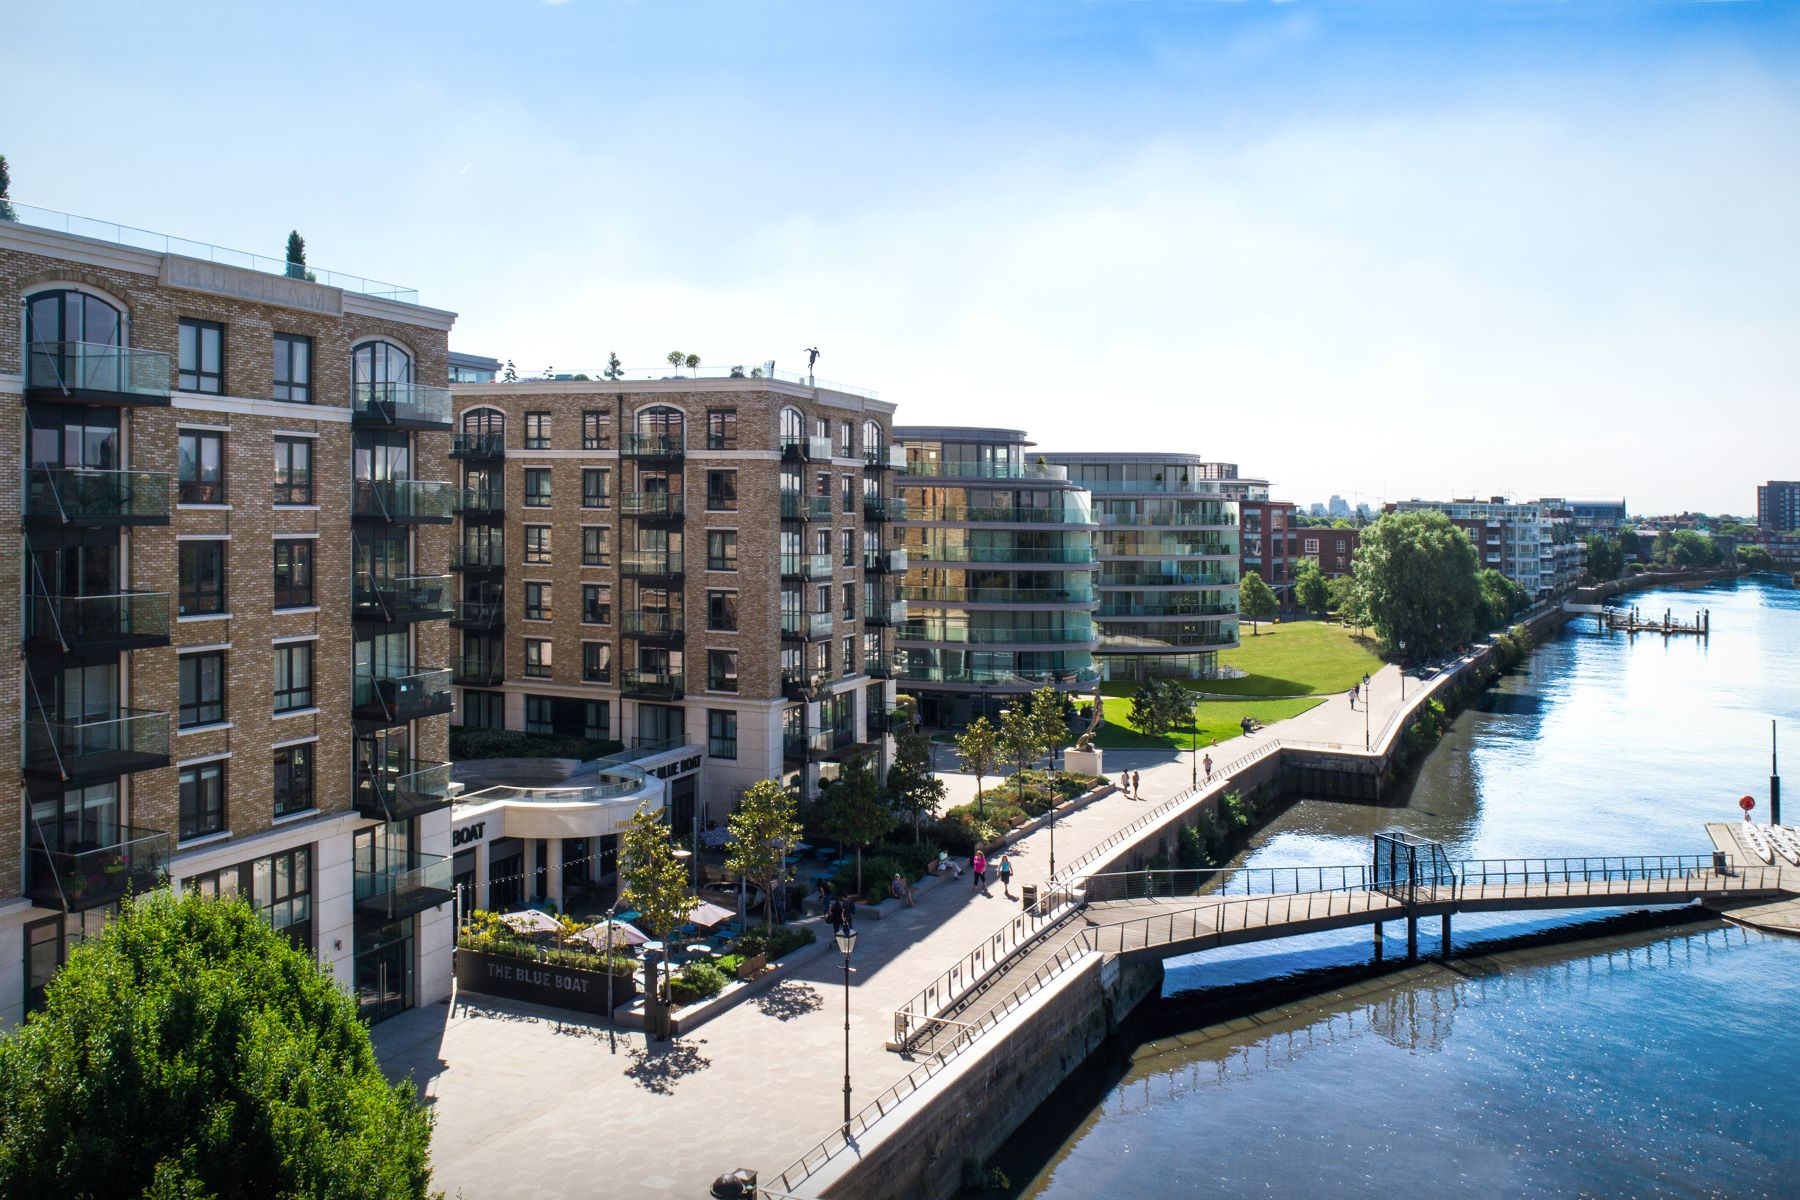 Apartments for Sale at Fulham Reach London, England W6 9GD United Kingdom